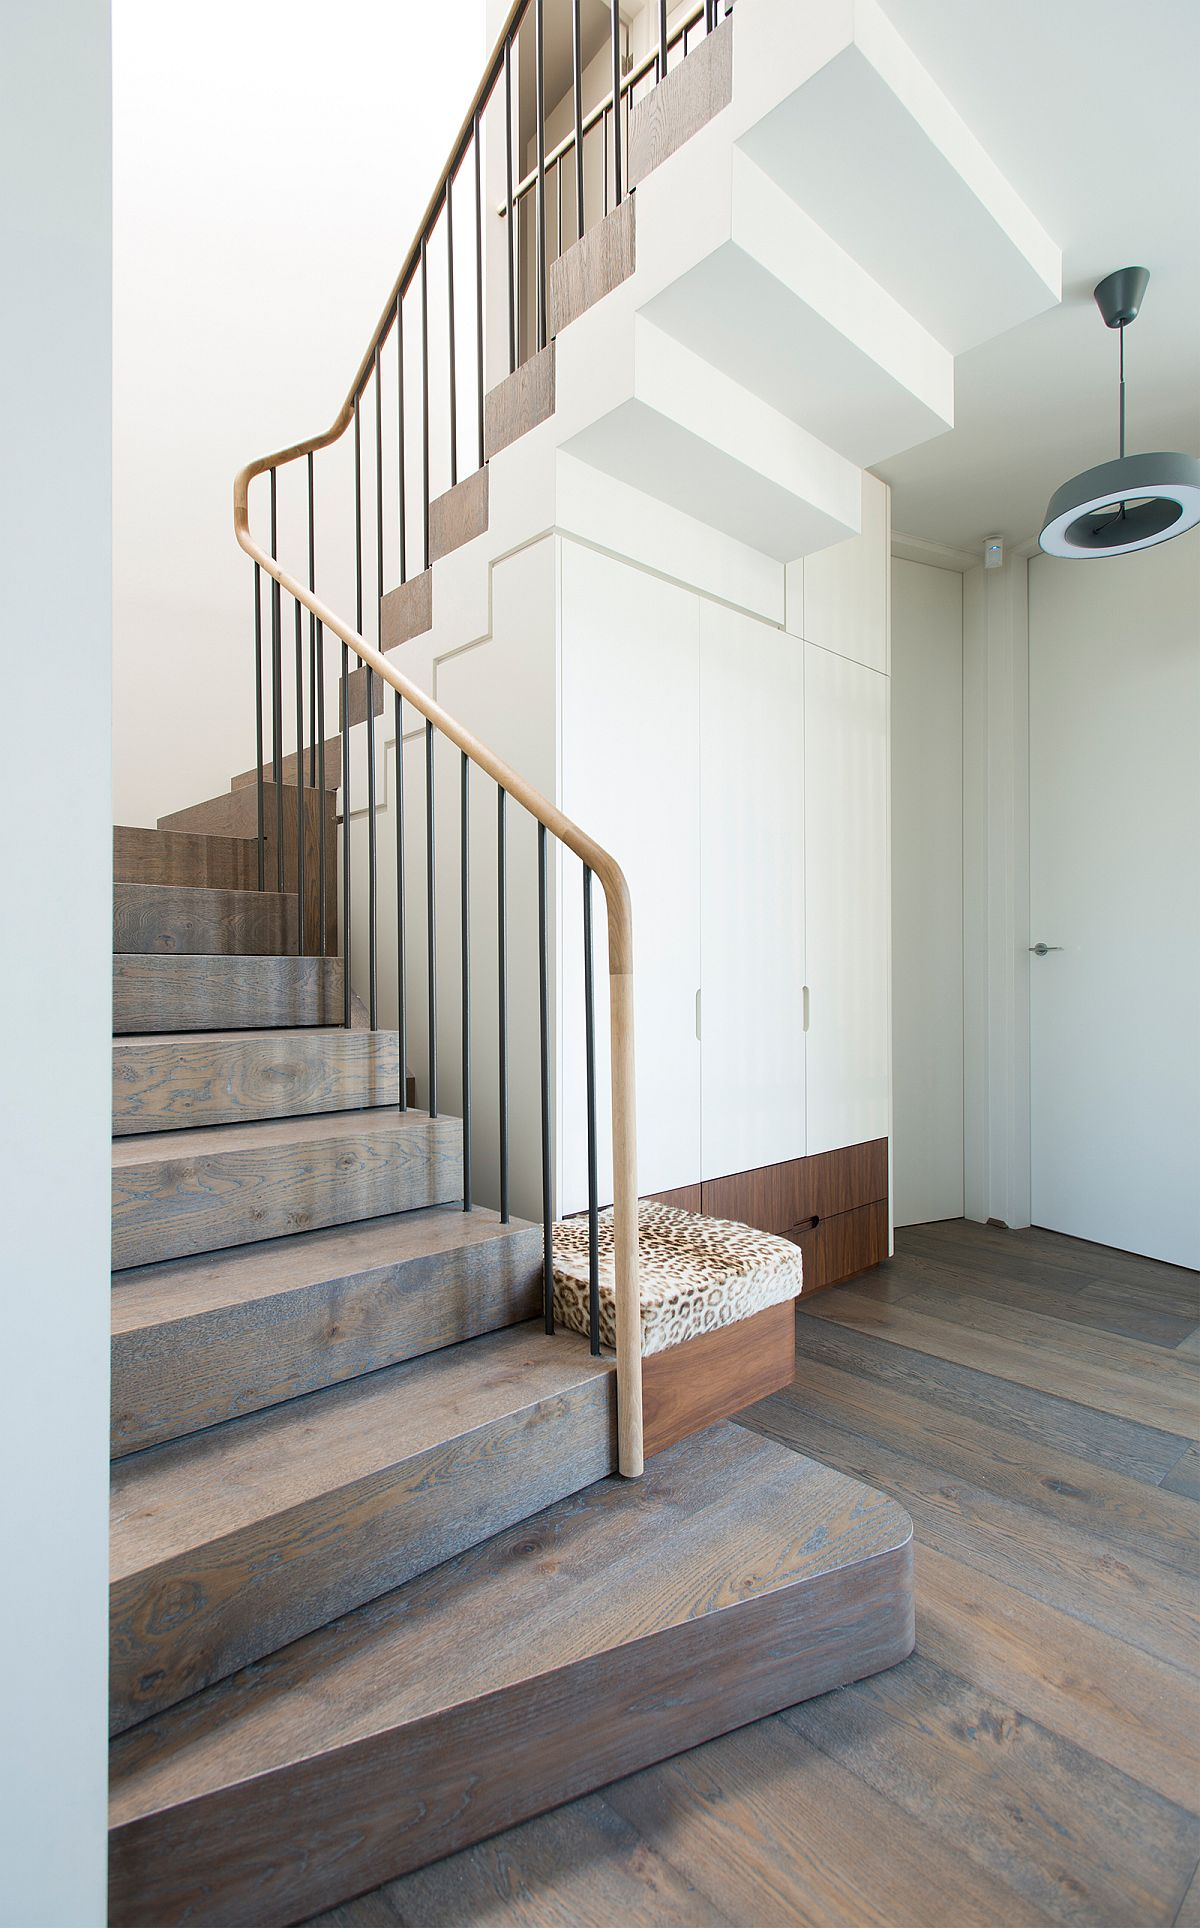 Stairway connecting the two levels of the modern suburban home